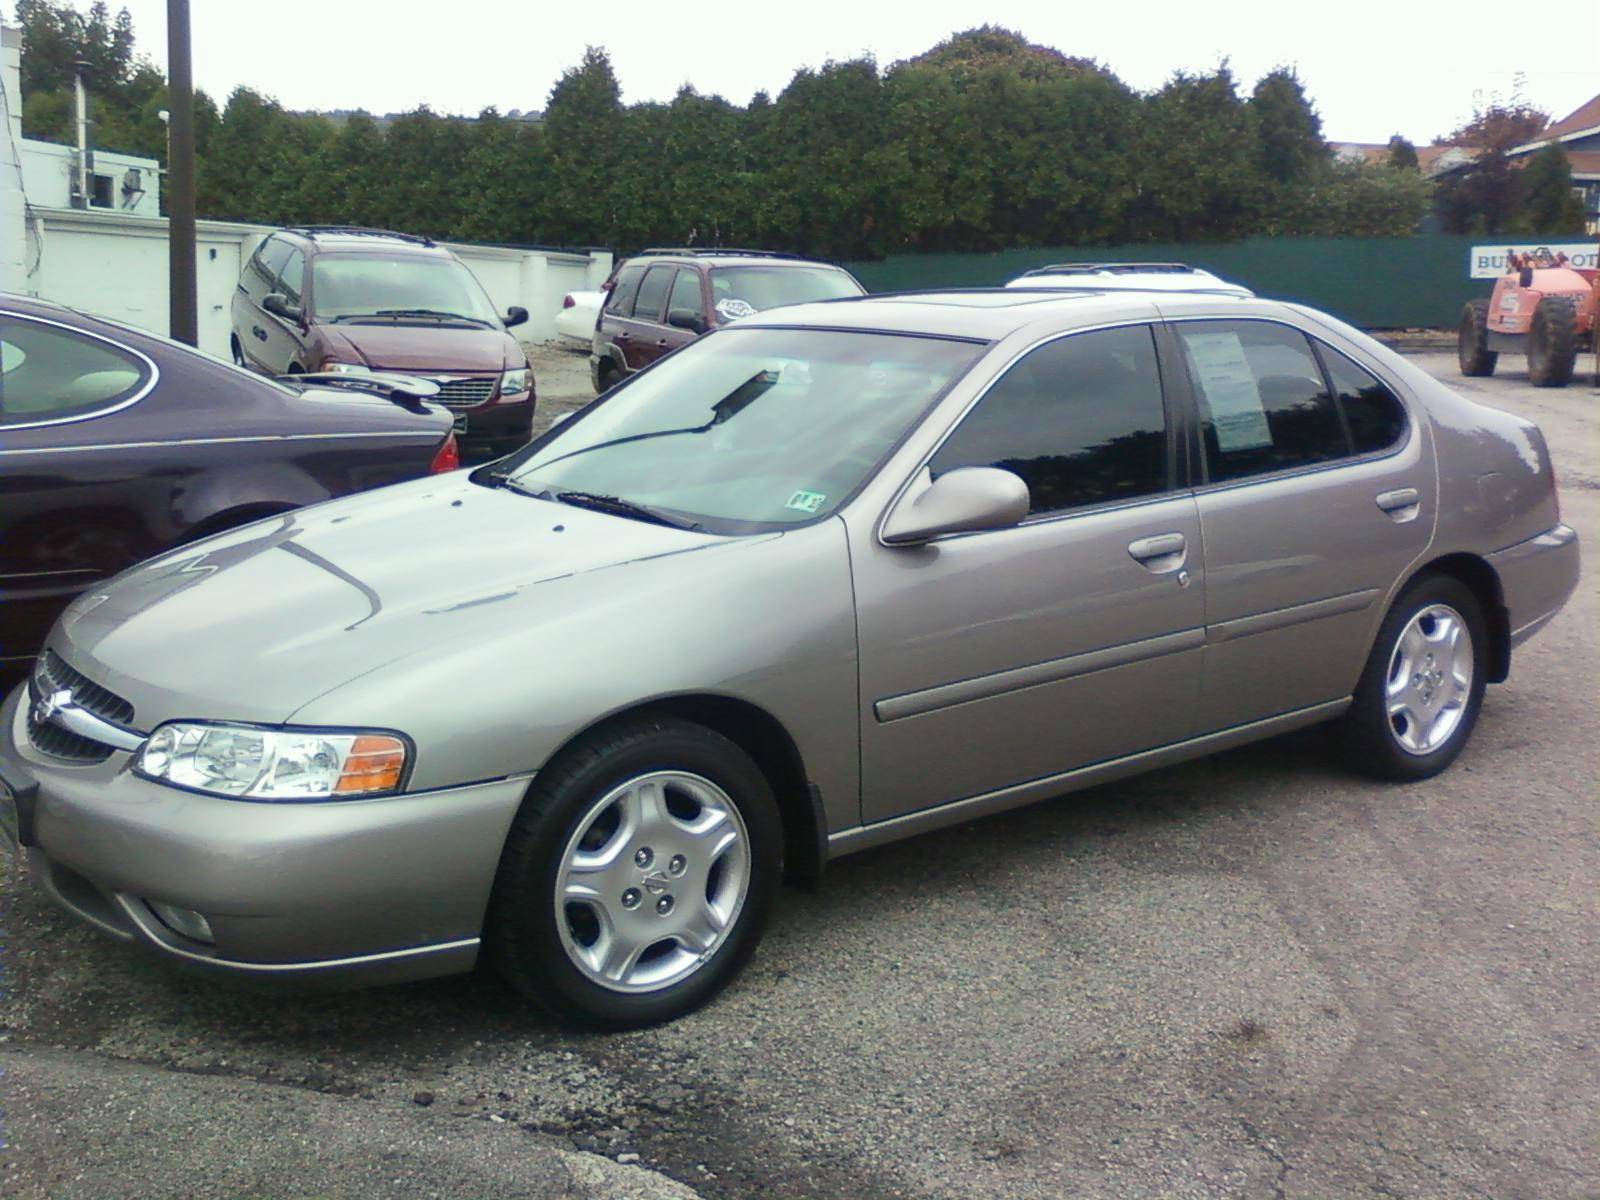 r41285 2001 Nissan Altima Specs Photos Modification Info at